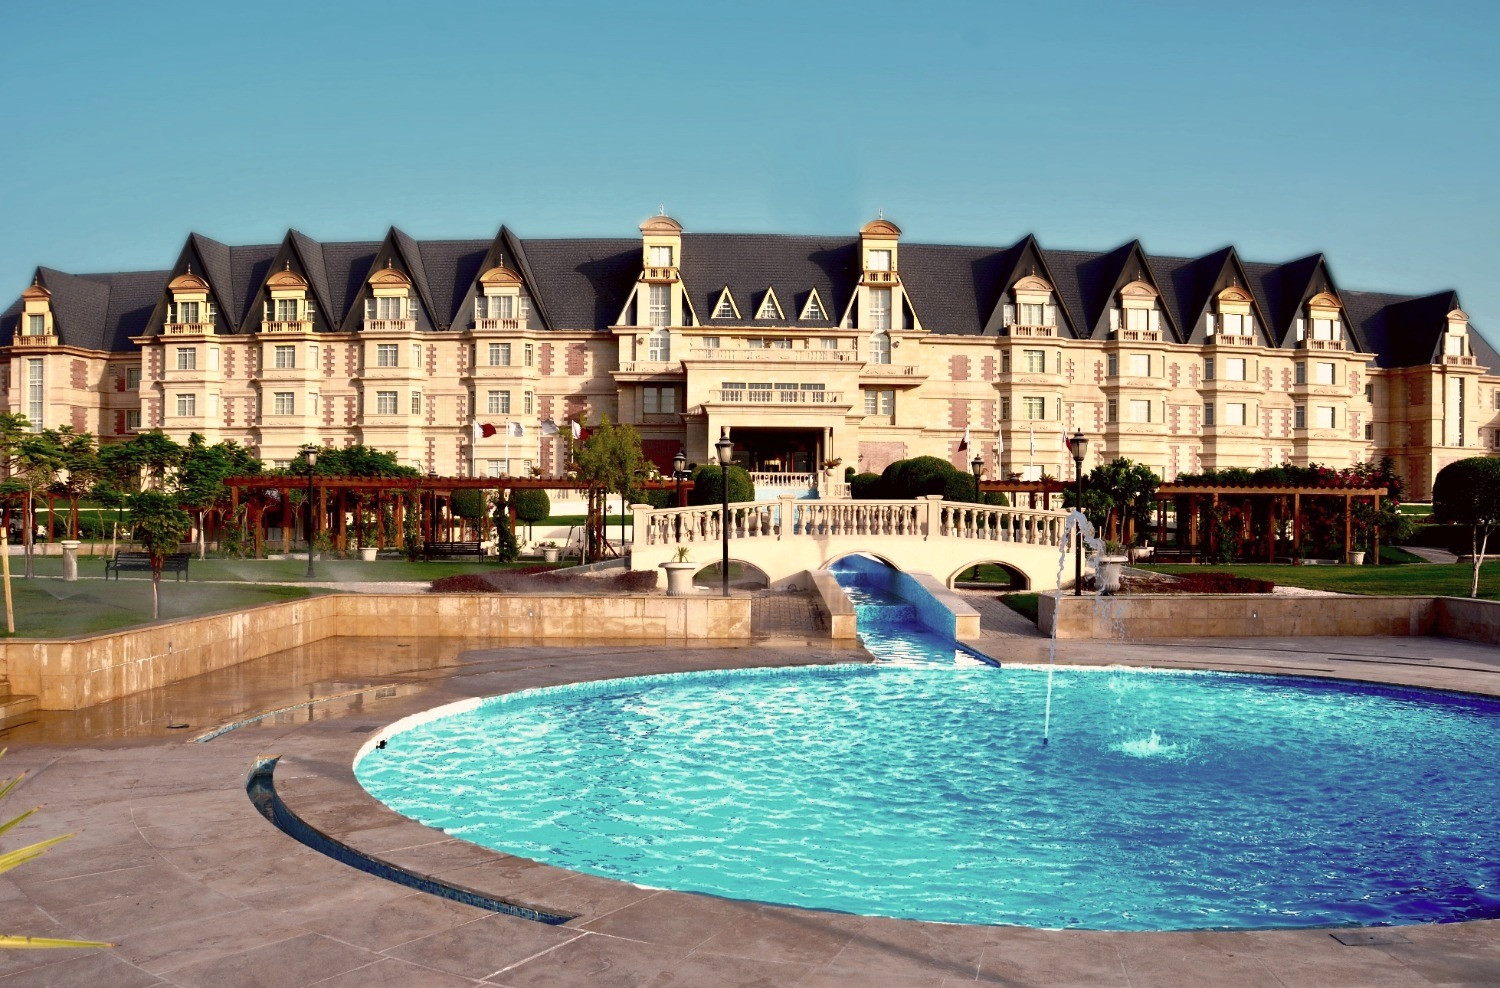 pool and fountain design in grand heritage hotel landscape